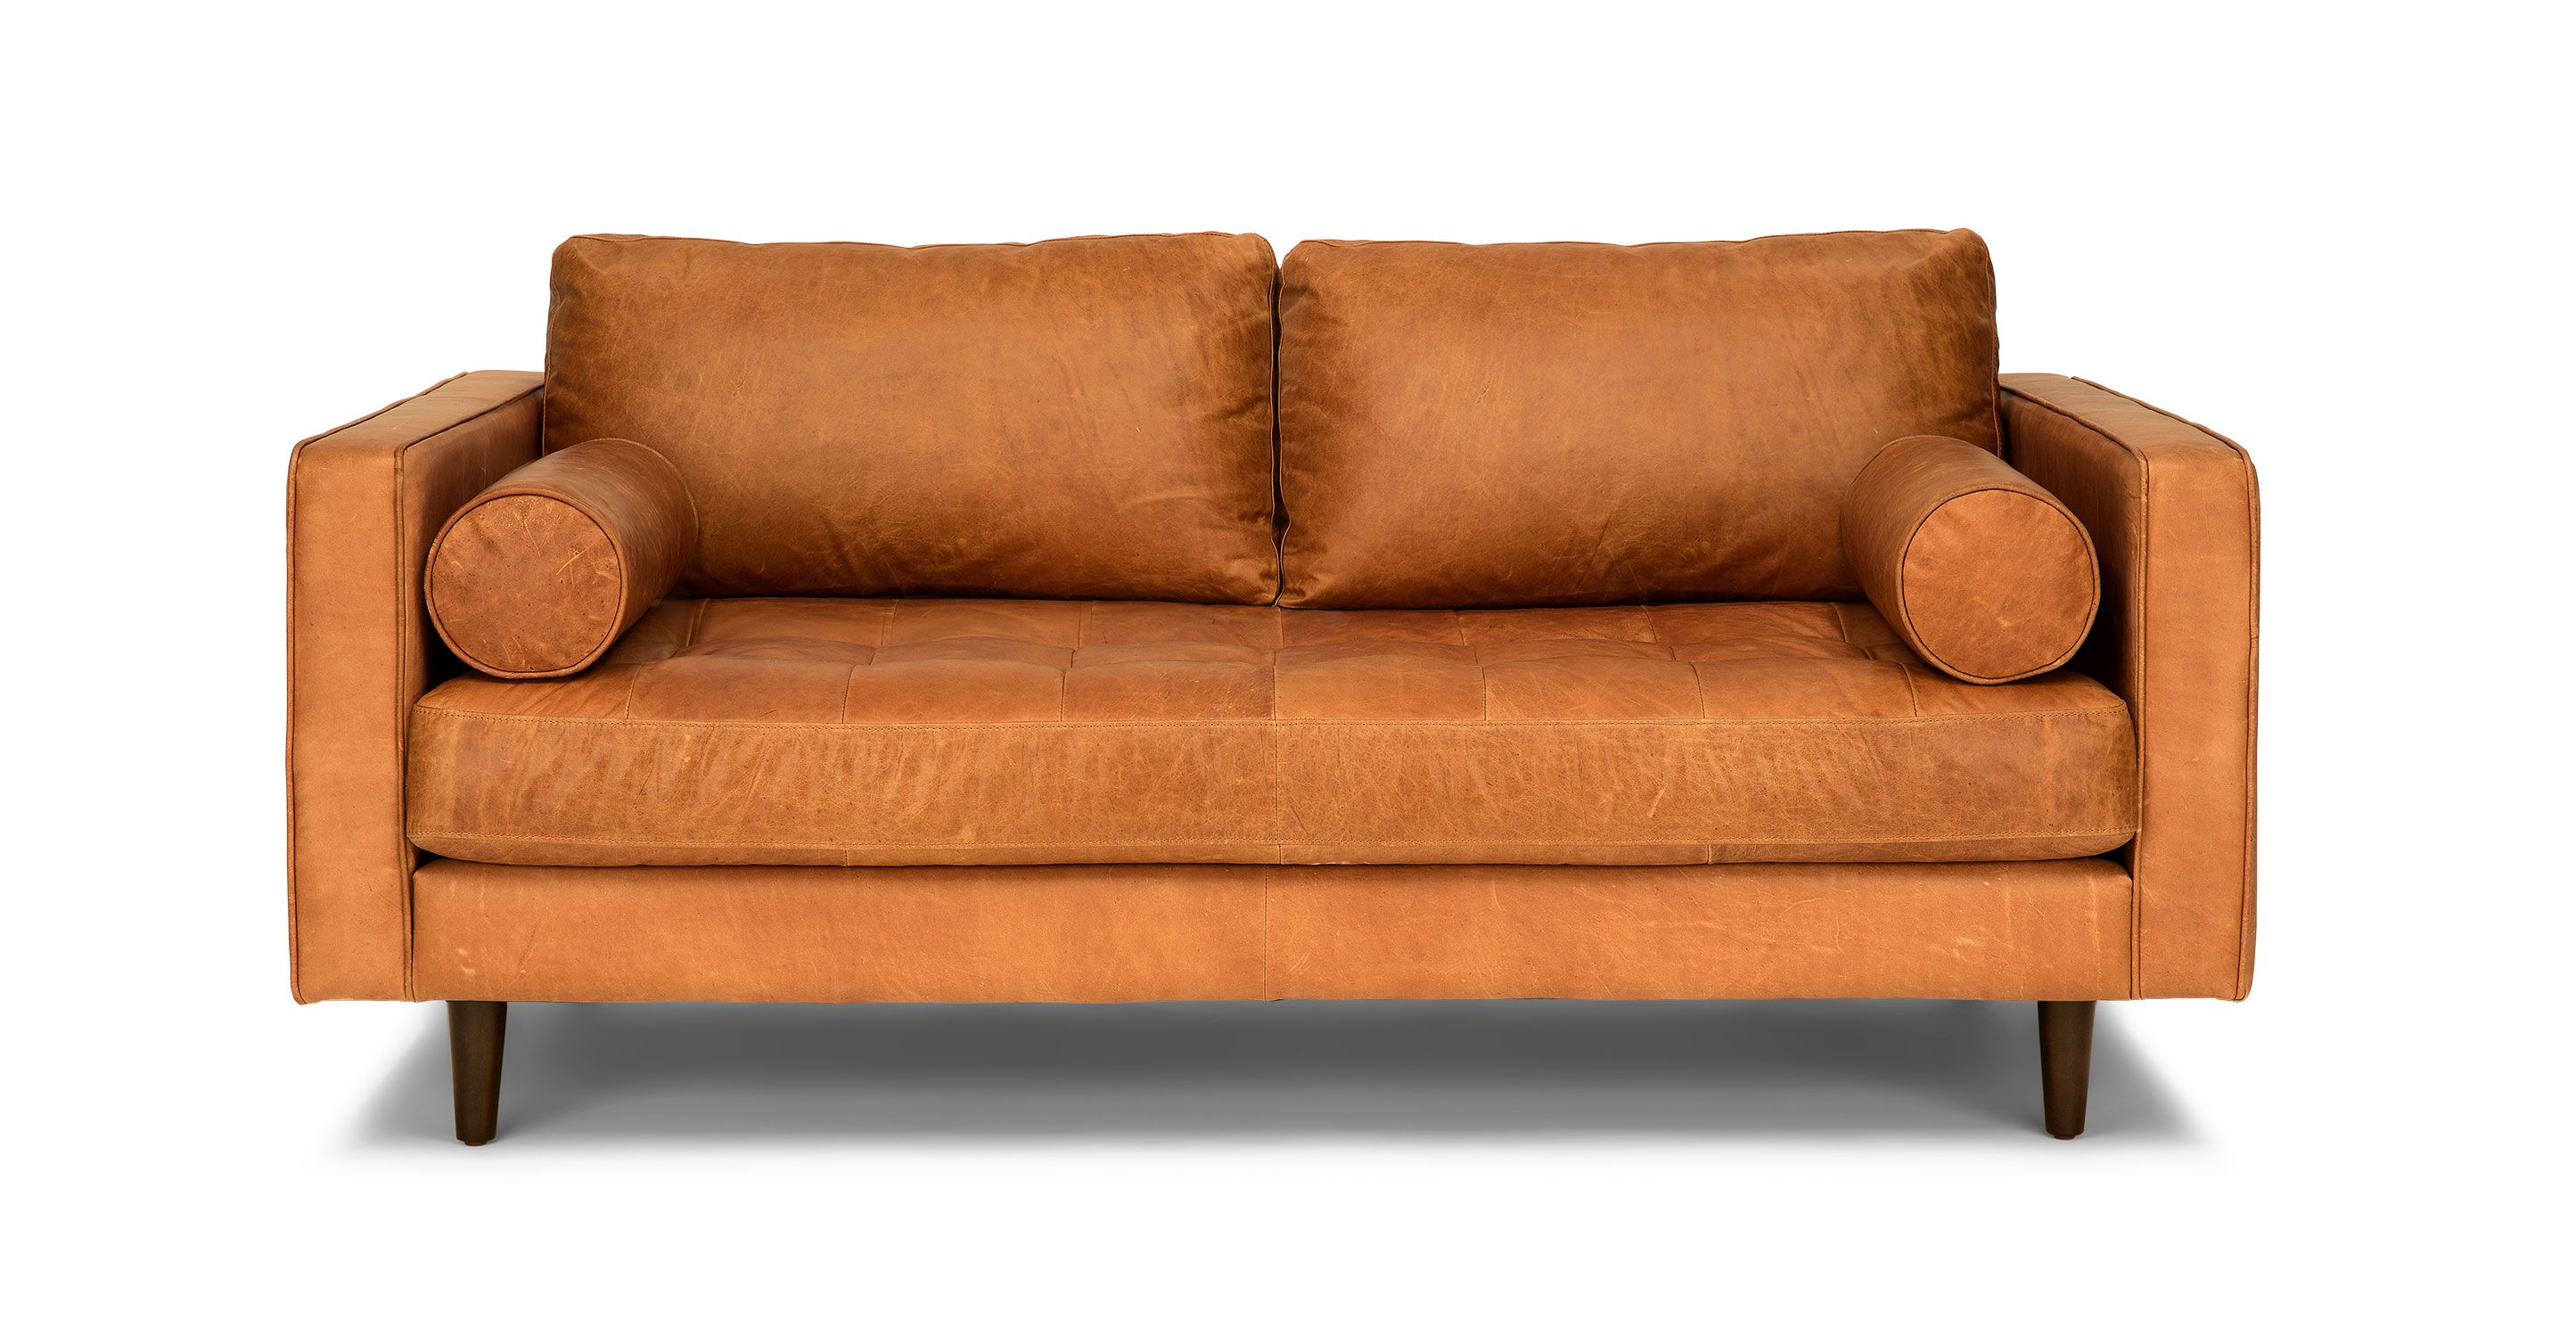 Best Tan Brown Leather Sofa 72 Wide Italian Leather 640 x 480